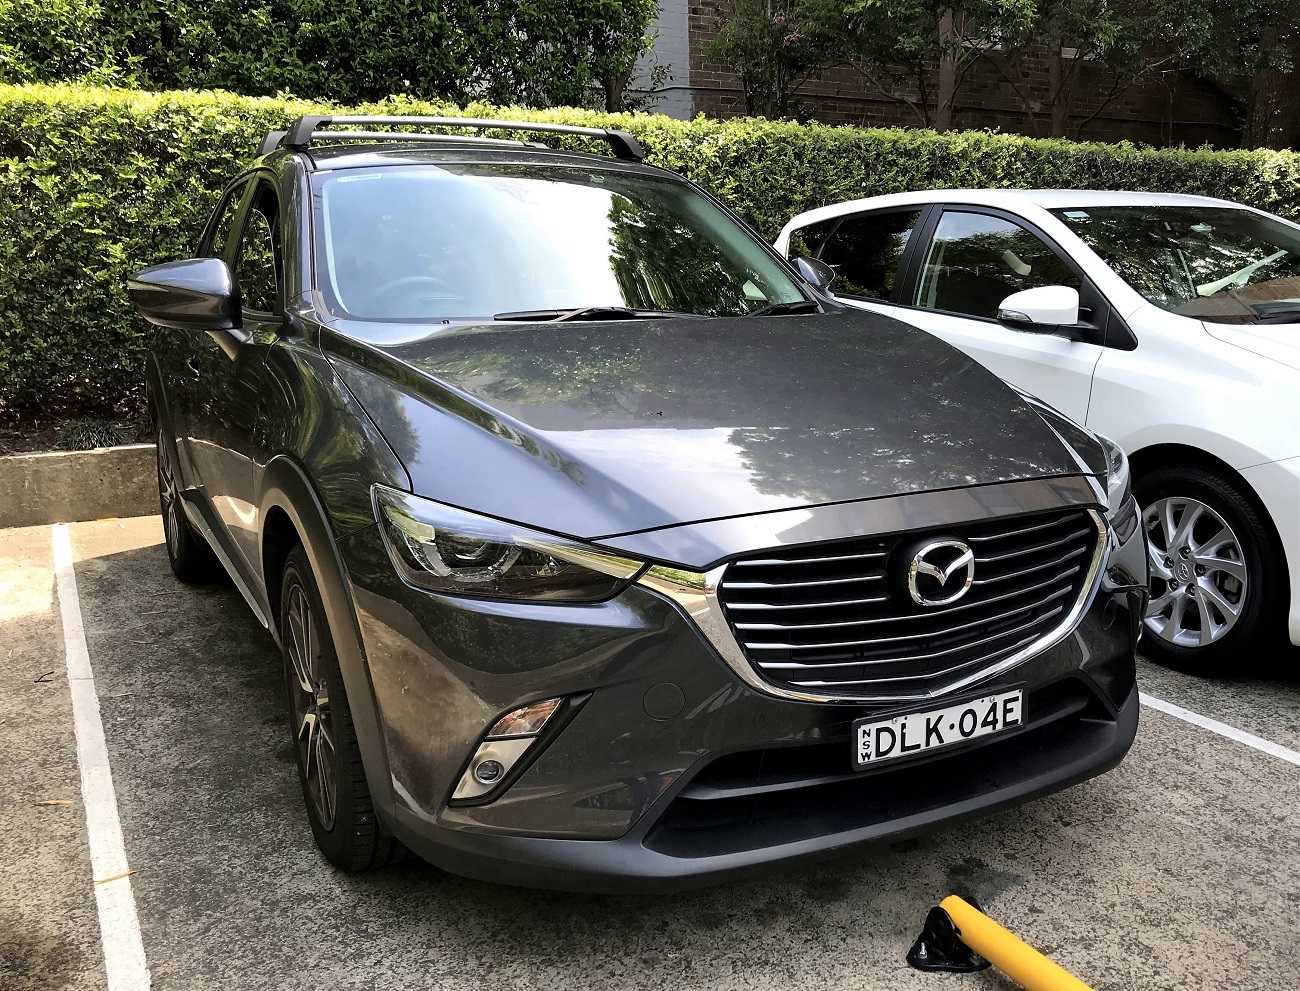 Picture of Camilla's 2016 Mazda CX3